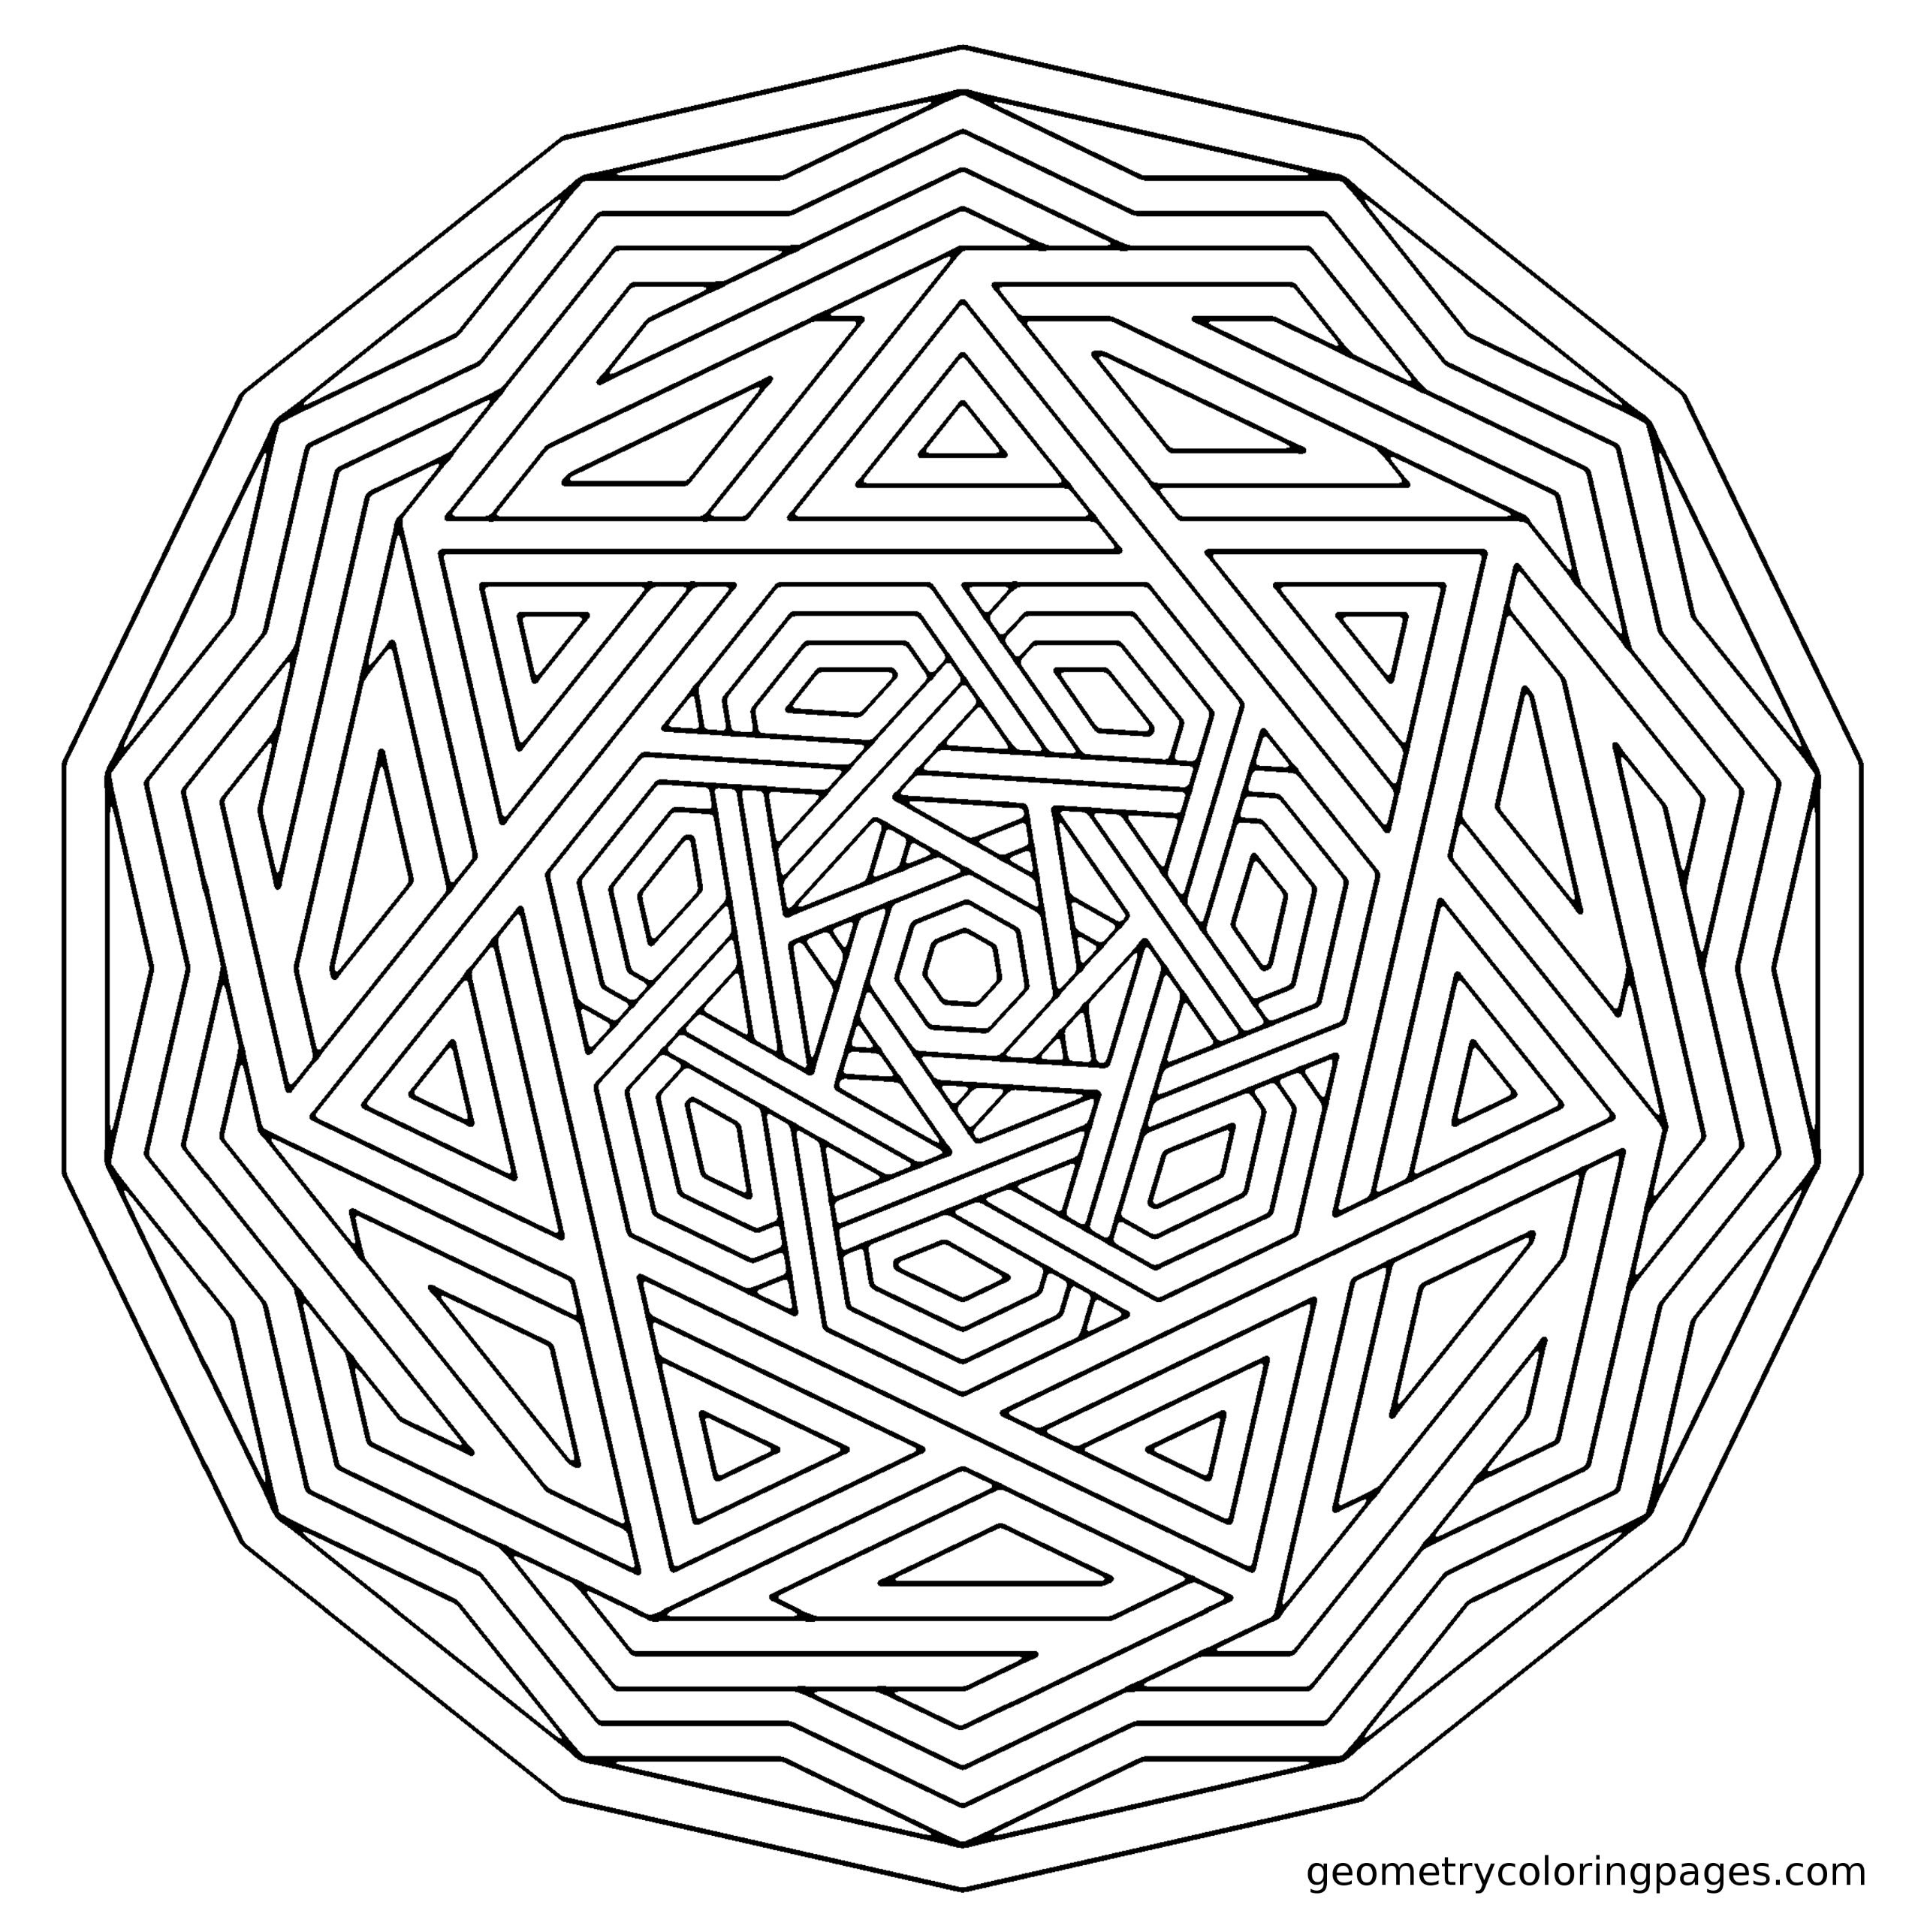 Coloring pages for anxiety. Level: complex : Anxiety